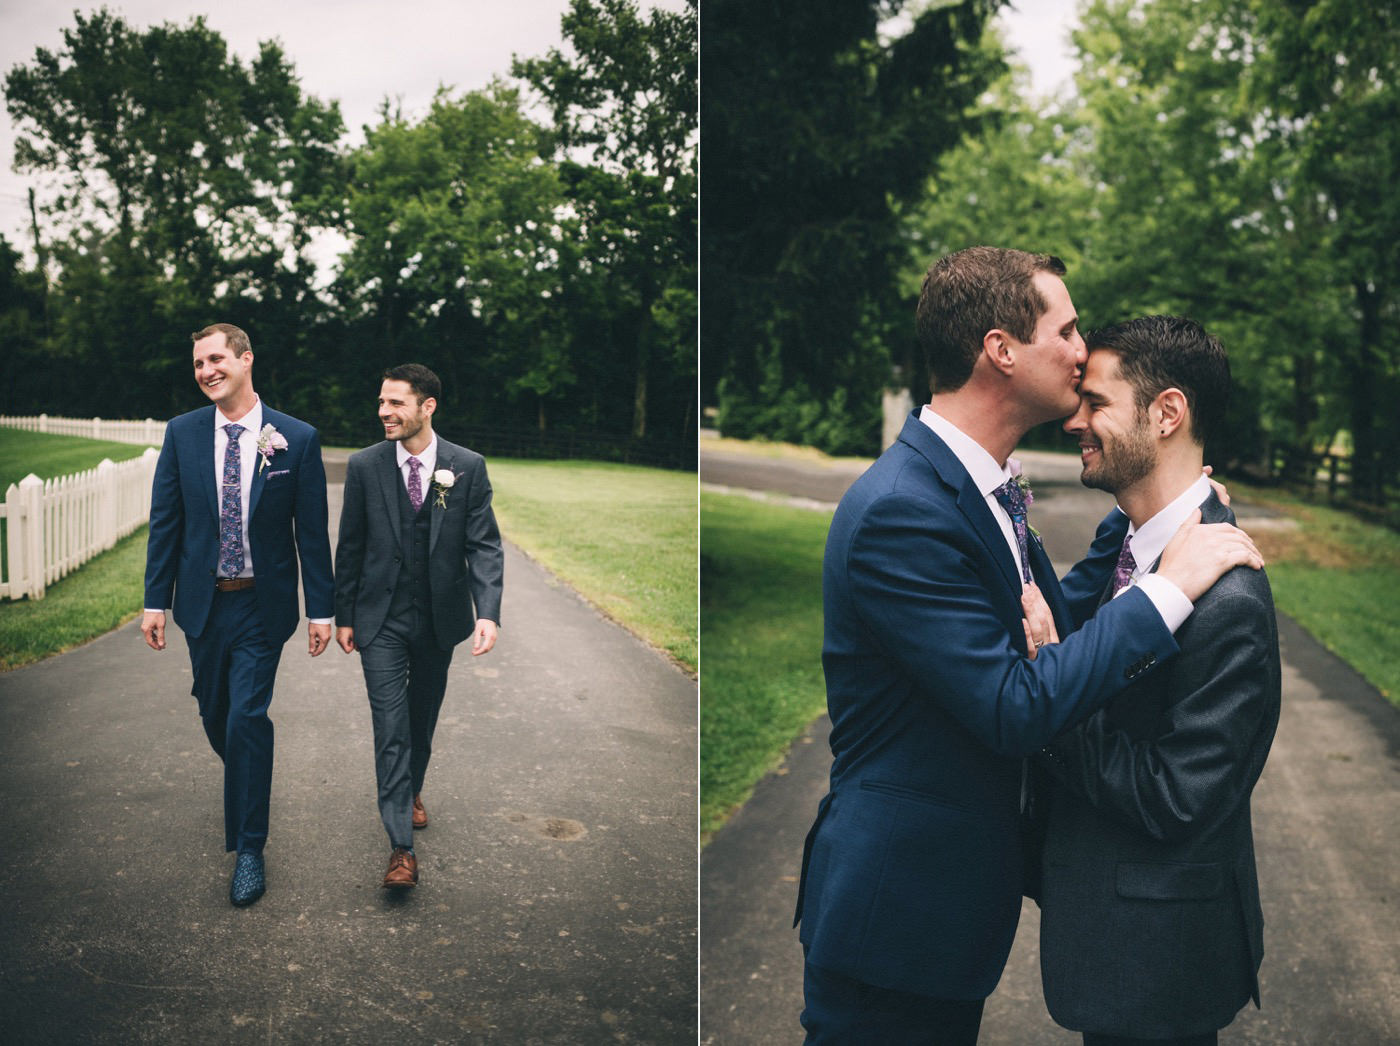 Will-Nate-Louisville-LGBTQ-Pride-Month-Kentucky-Wedding-By-Sarah-Katherine-Davis-Photograpy0011.JPG